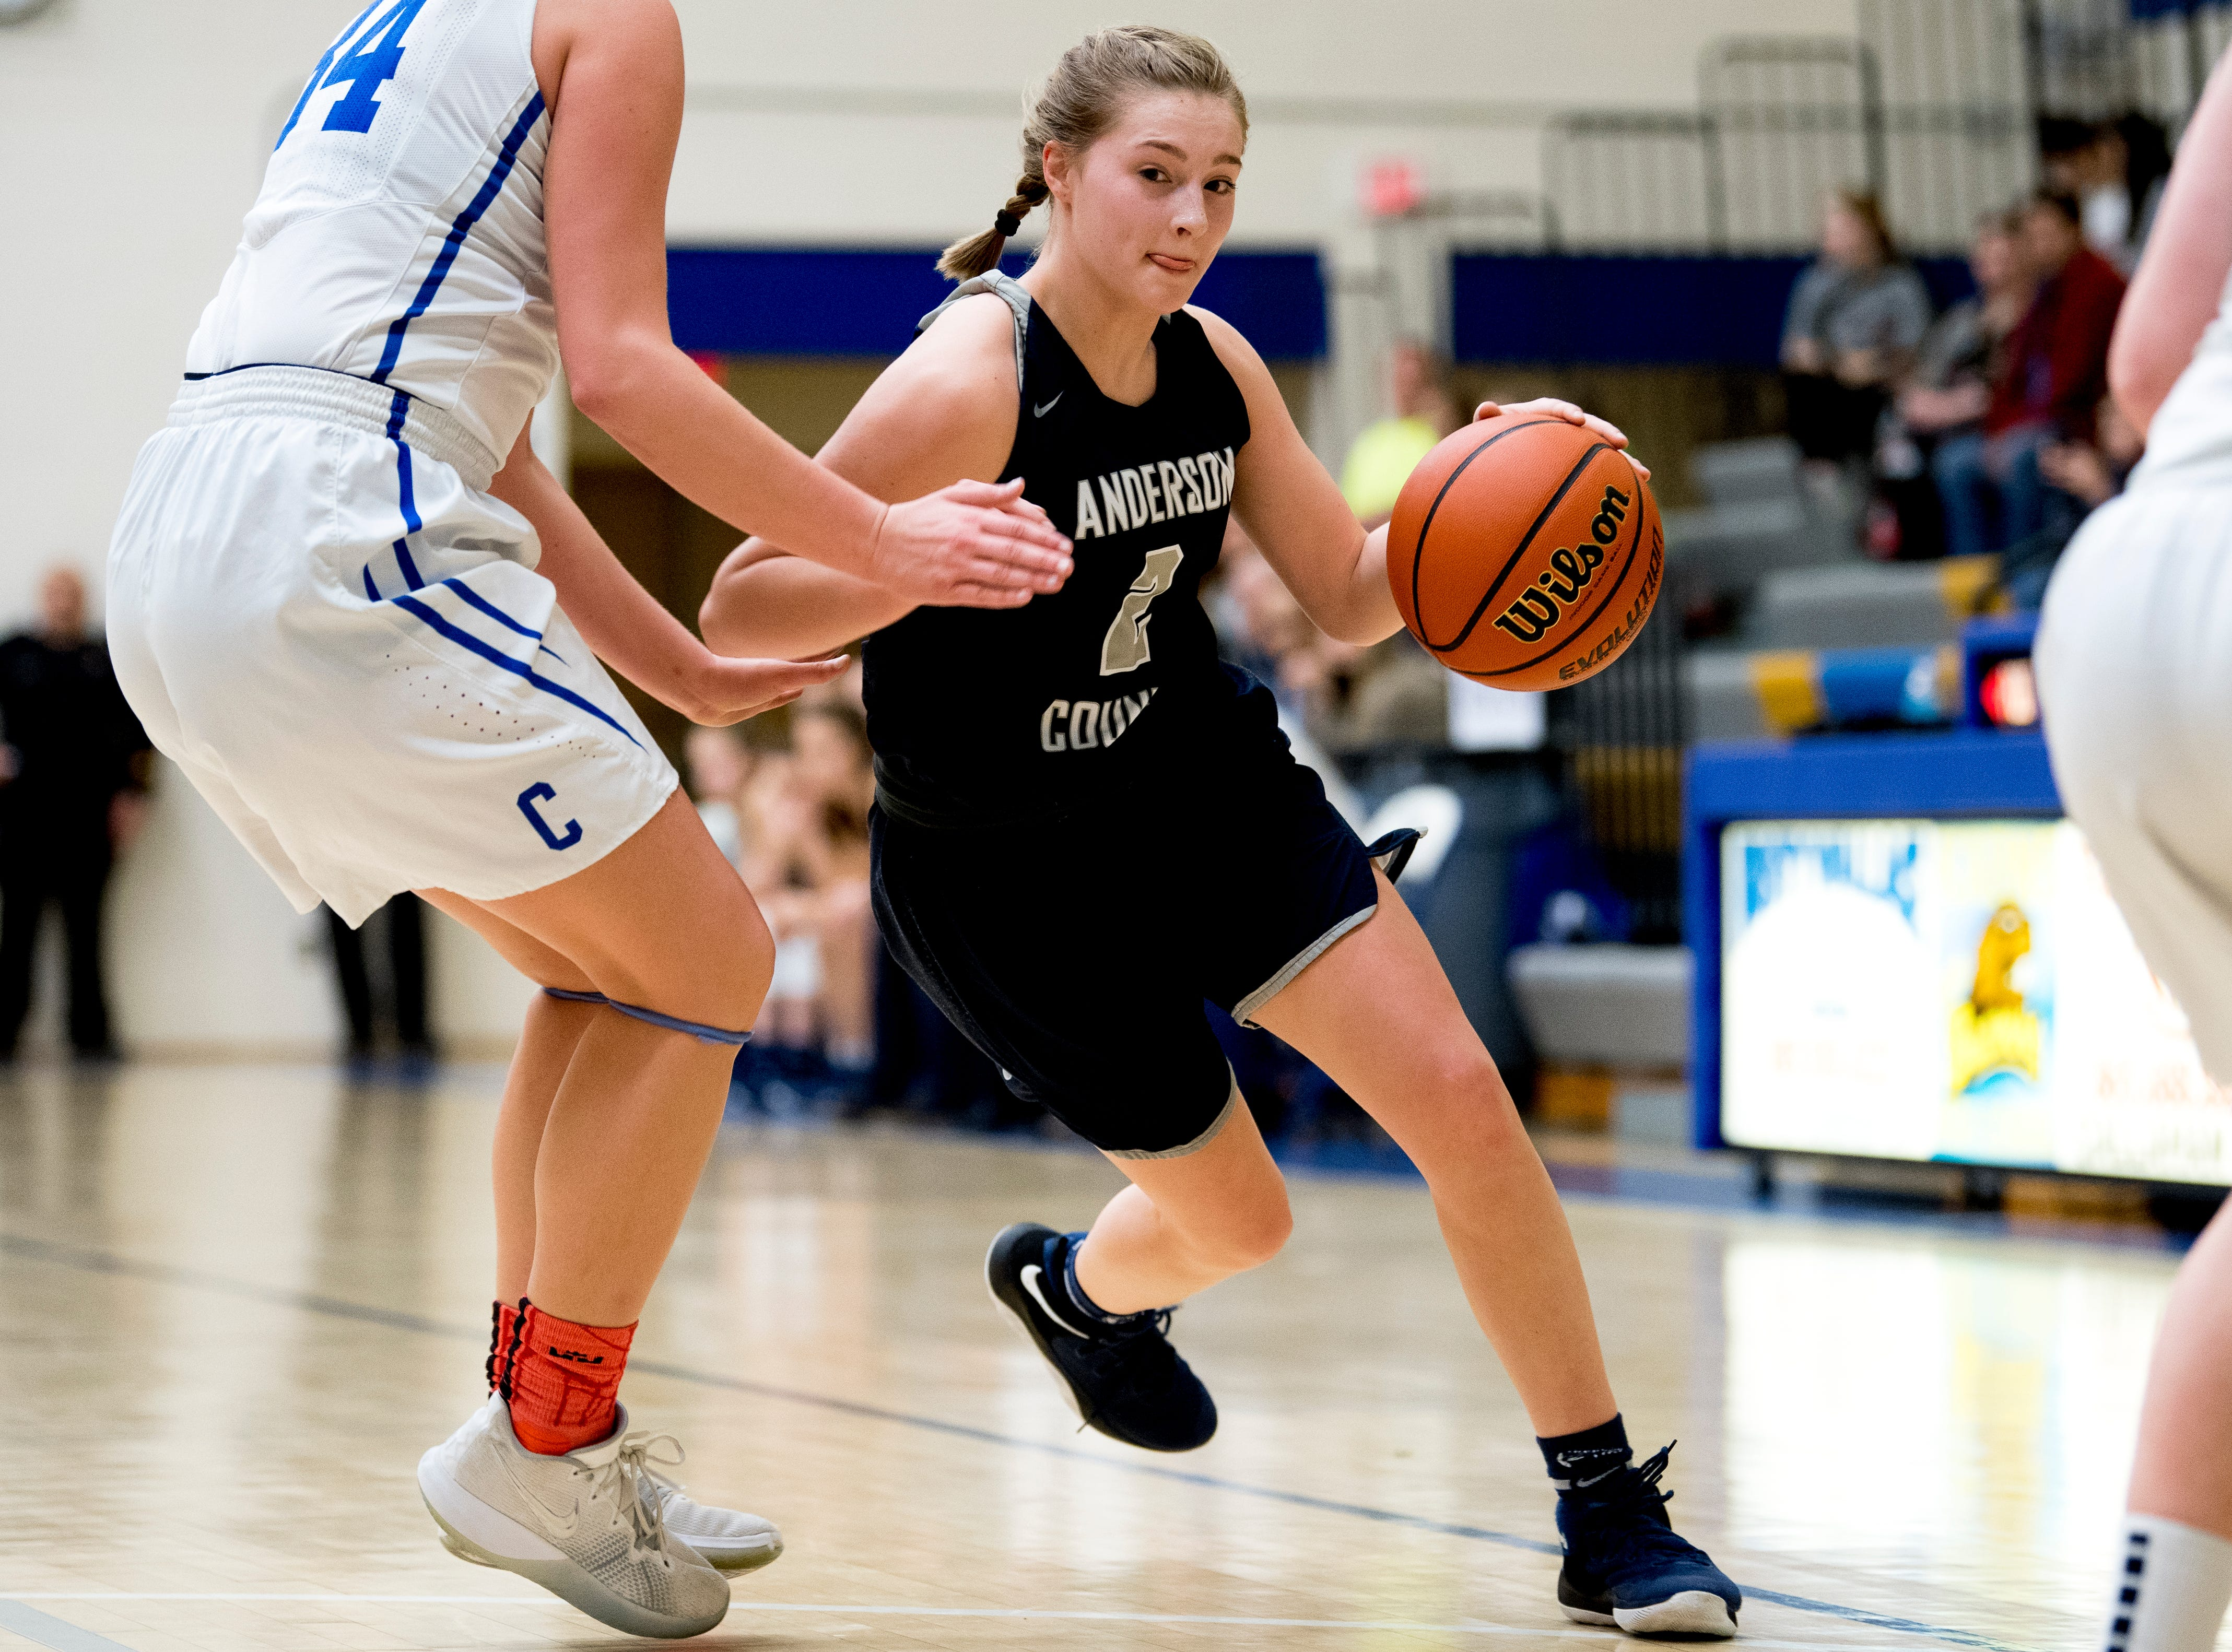 Anderson County's Shae Berry (2) dribbles the ball during a game between semifinal game between Anderson County and Campbell County at Karns High School in Knoxville, Tennessee on Saturday, February 16, 2019.